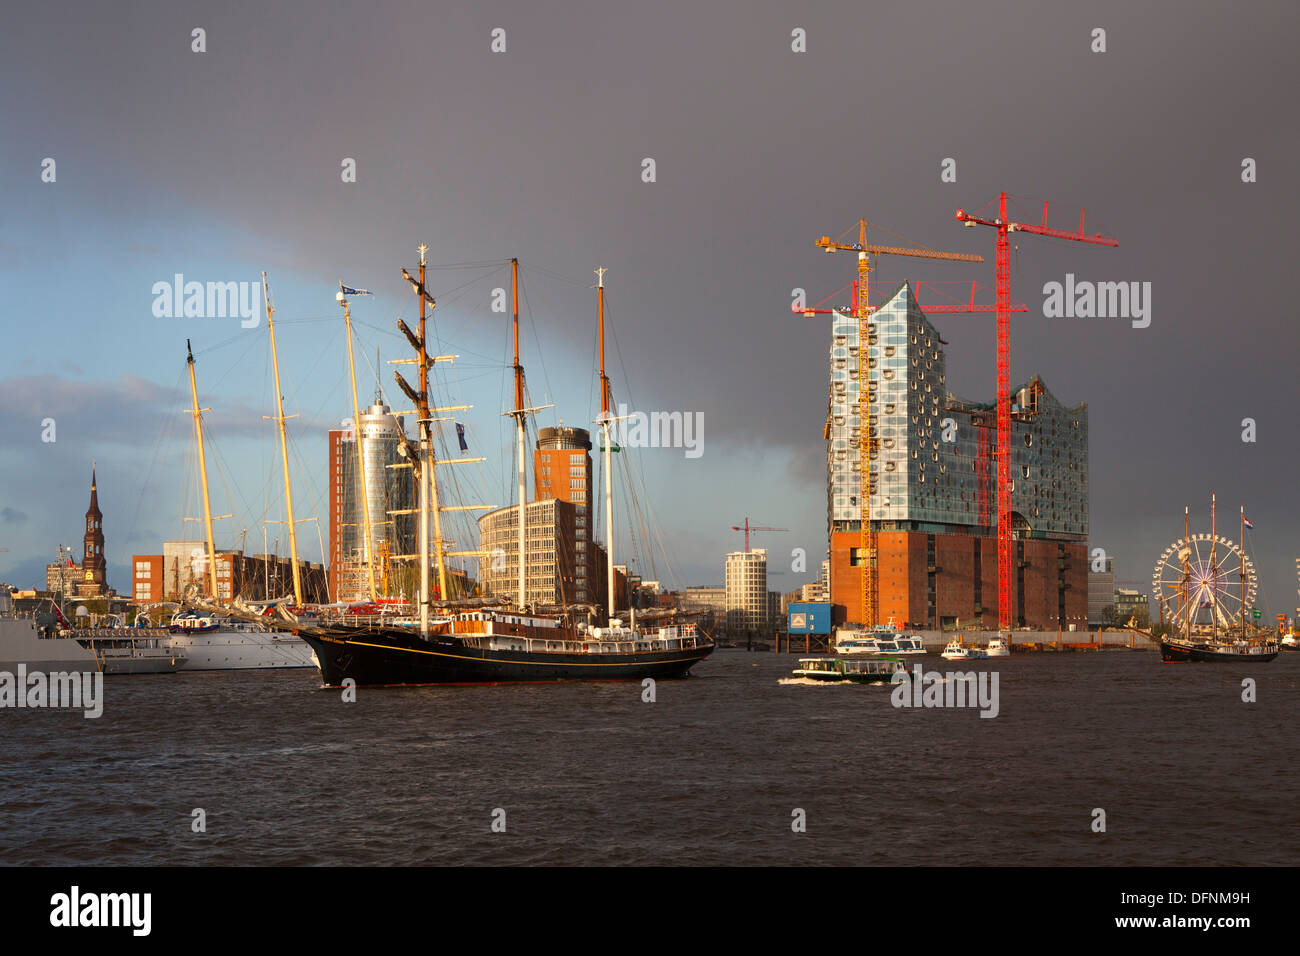 Sailing ship in front of Hafen City and Elbphilharmonie, Hamburg, Germany, Europe - Stock Image